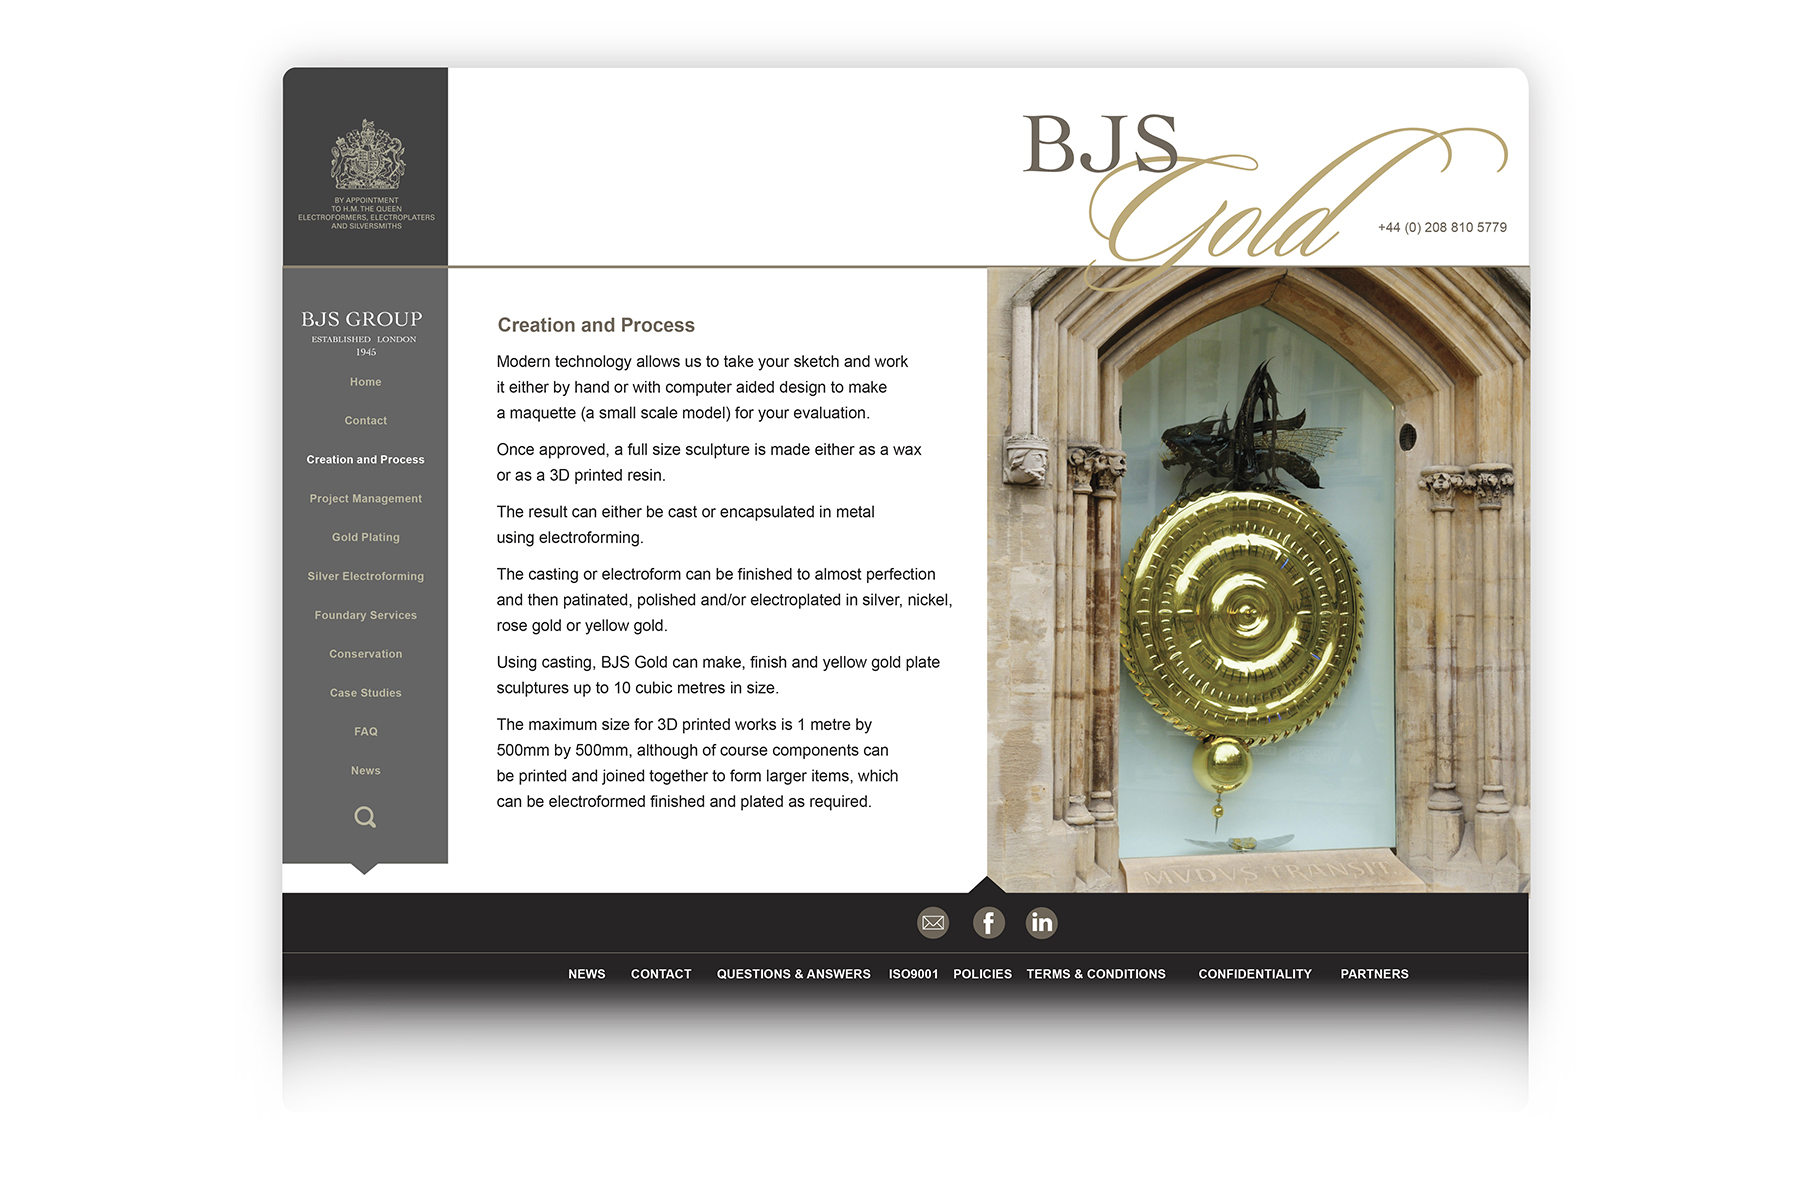 Part of the BJS Group, web site design for BJS Gold, offering high quality gold plating for artists and designers